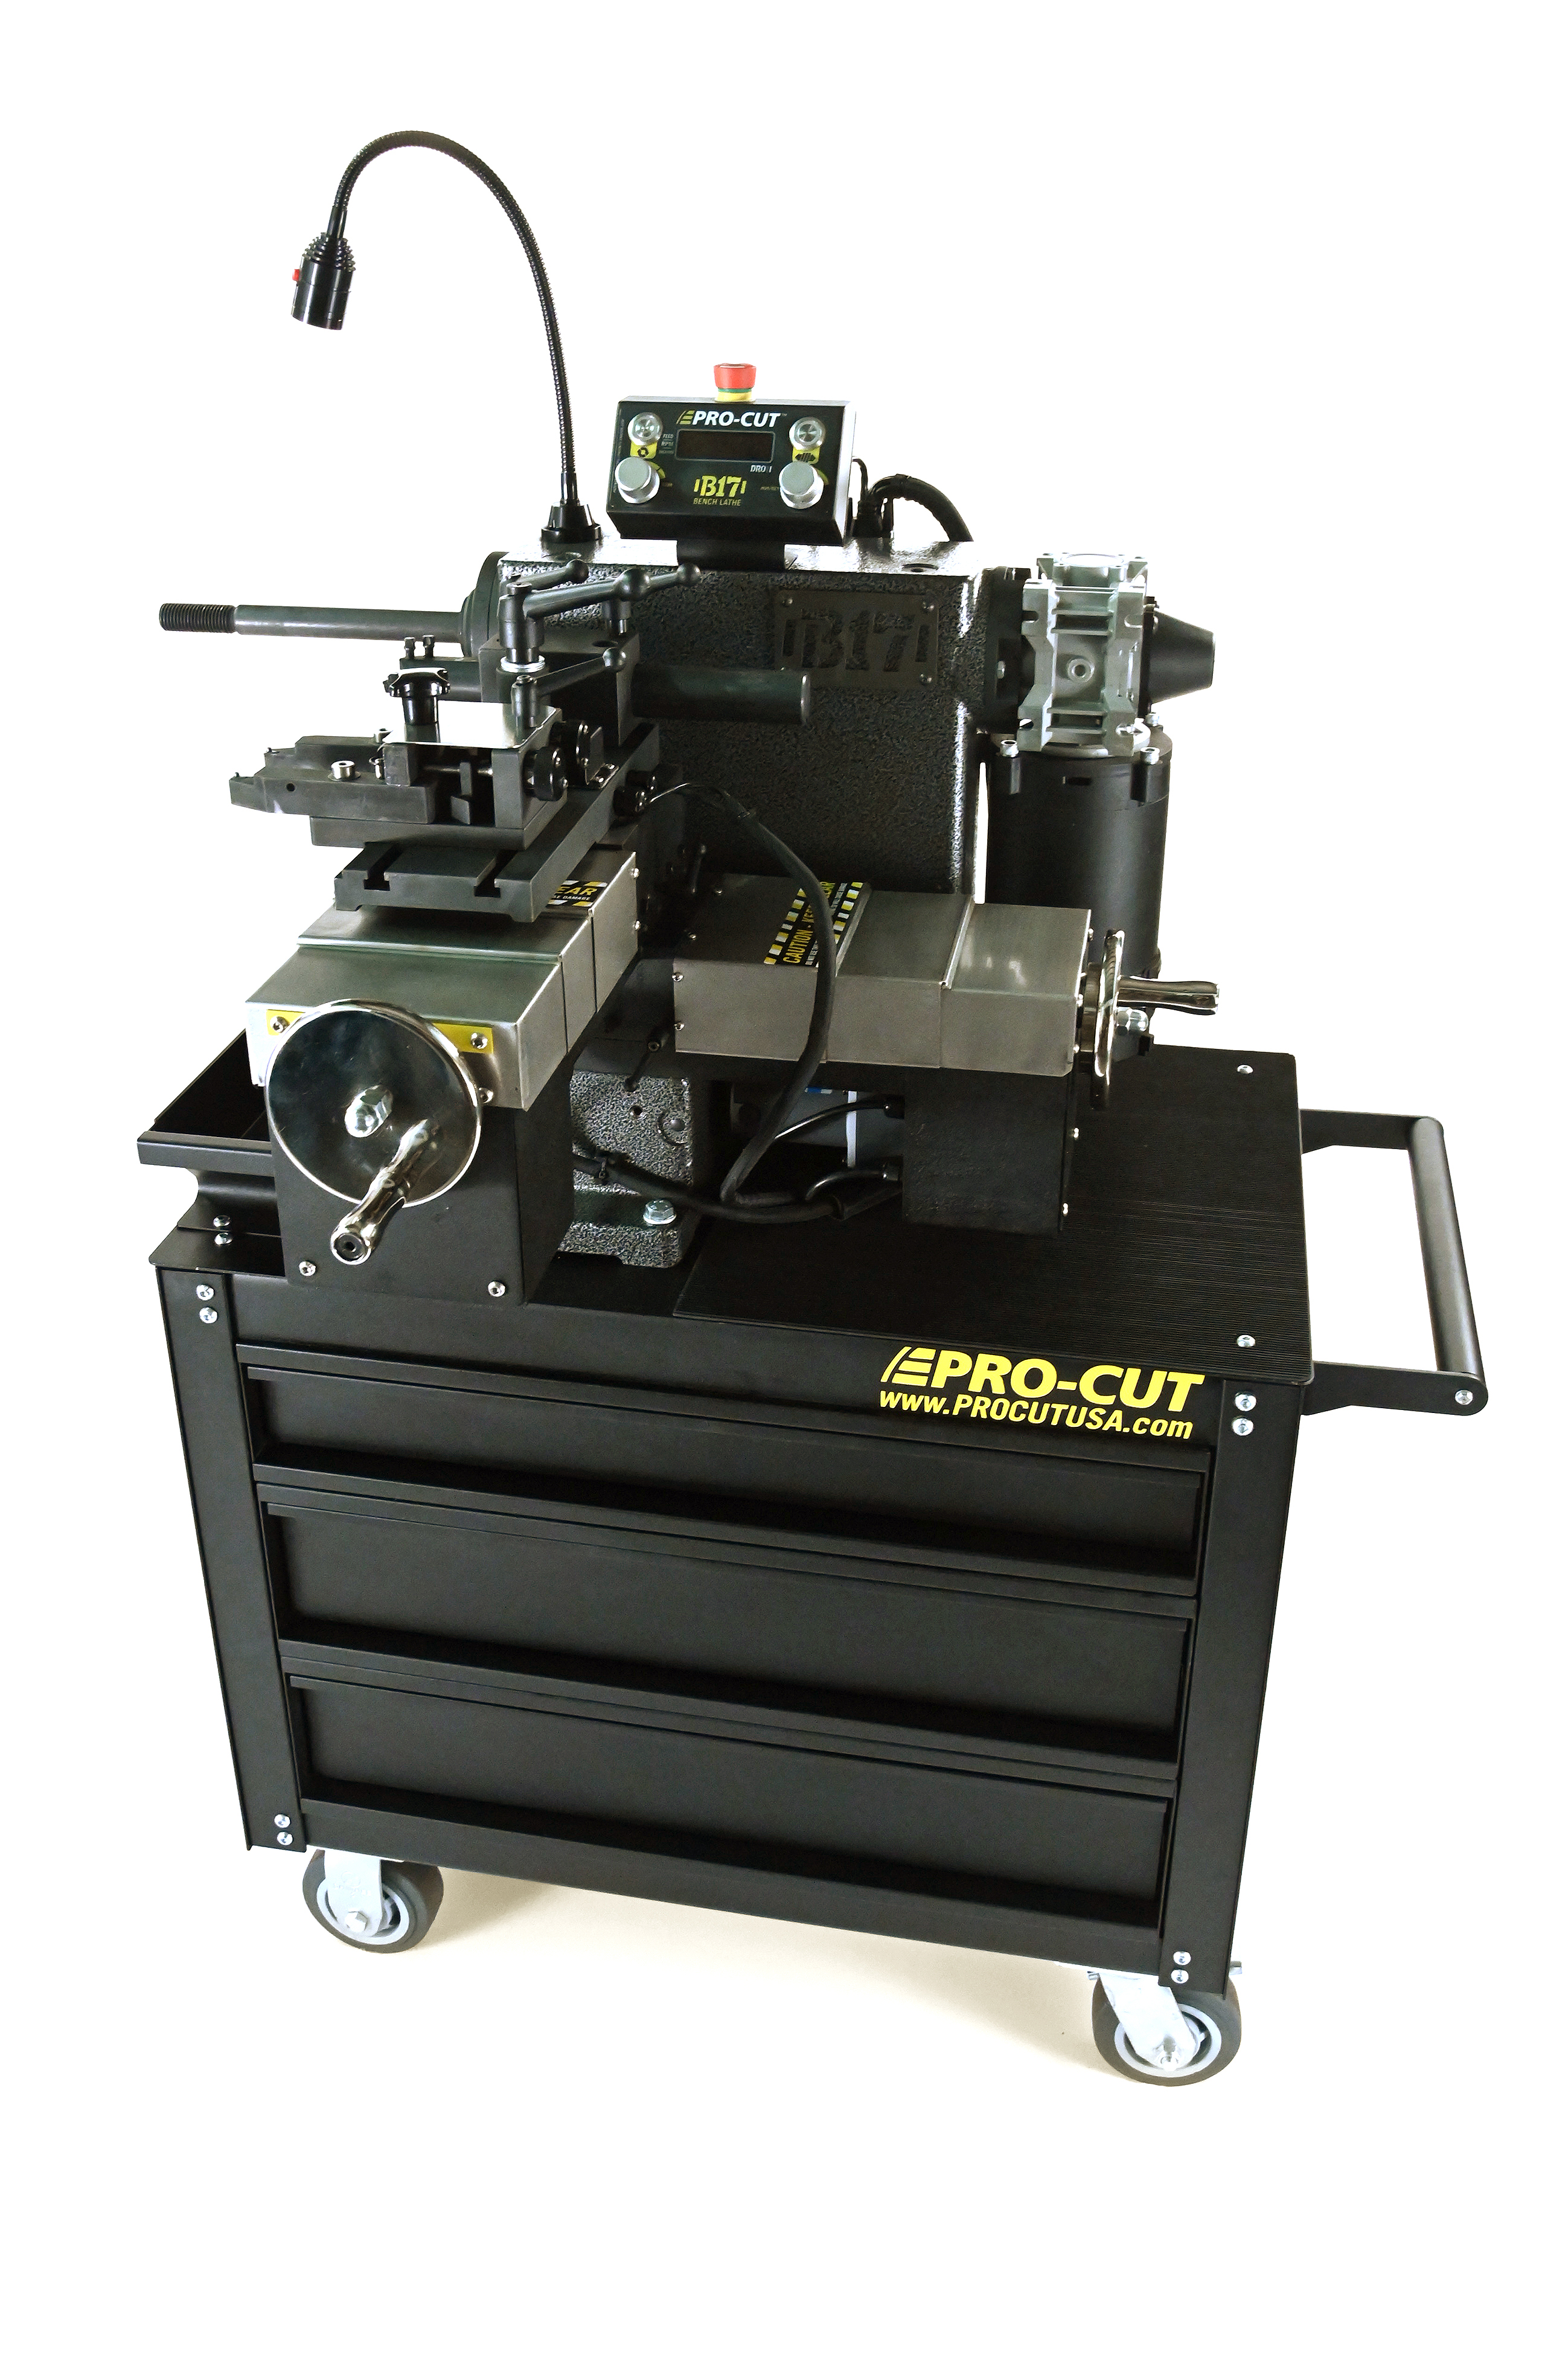 Support | Pro-Cut On Car Brake Lathes